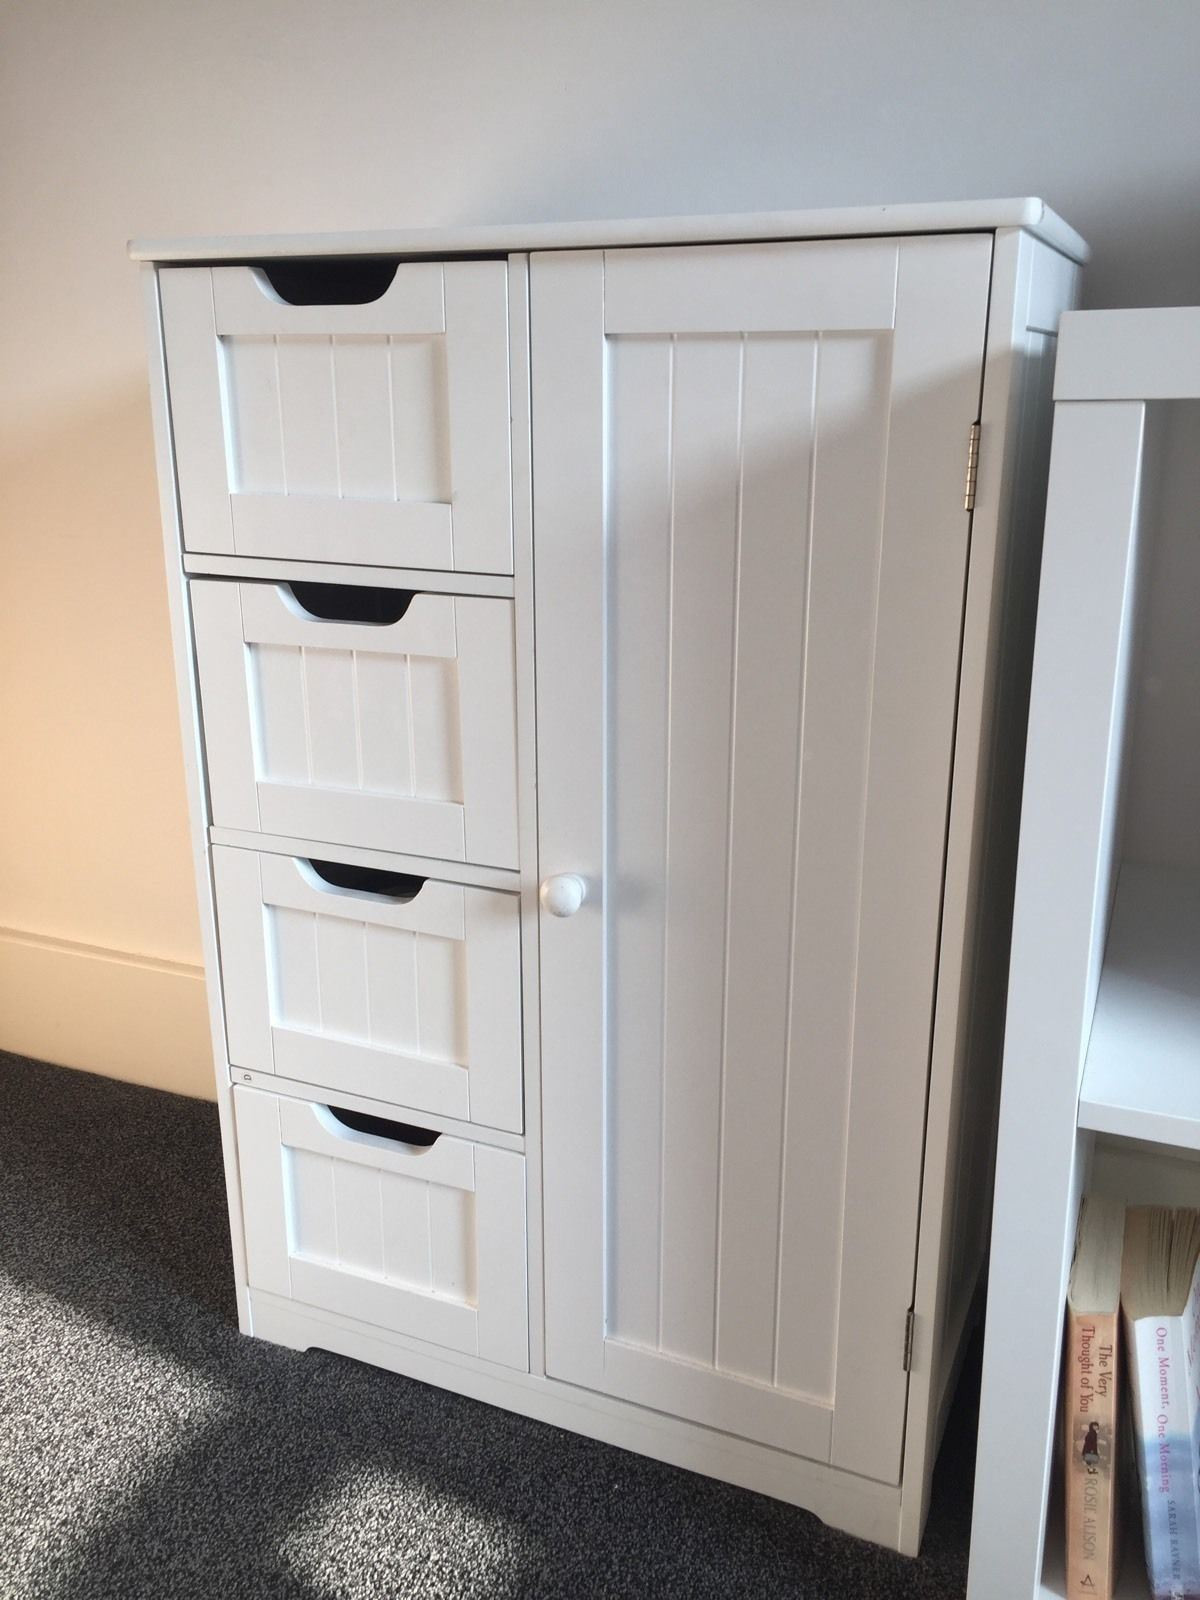 Best ideas about Bedroom Storage Cabinets . Save or Pin New White Wooden Bathroom Cabinet Shelf Furniture Cupboard Now.